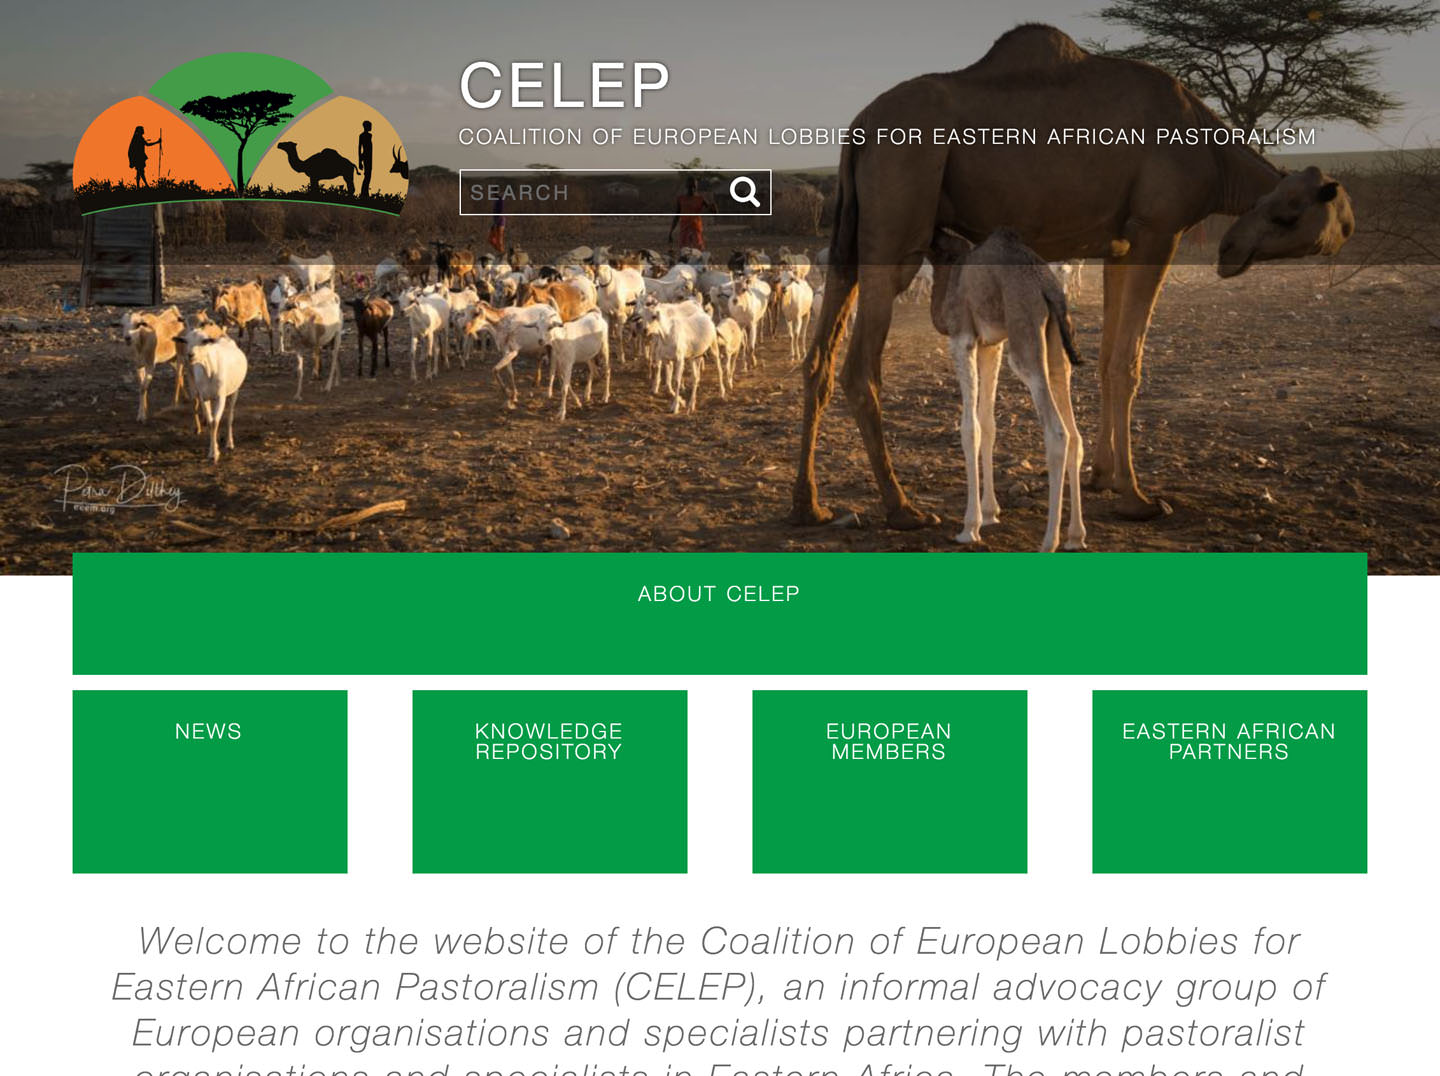 The homepage of CELEP on desktop-sized screens.